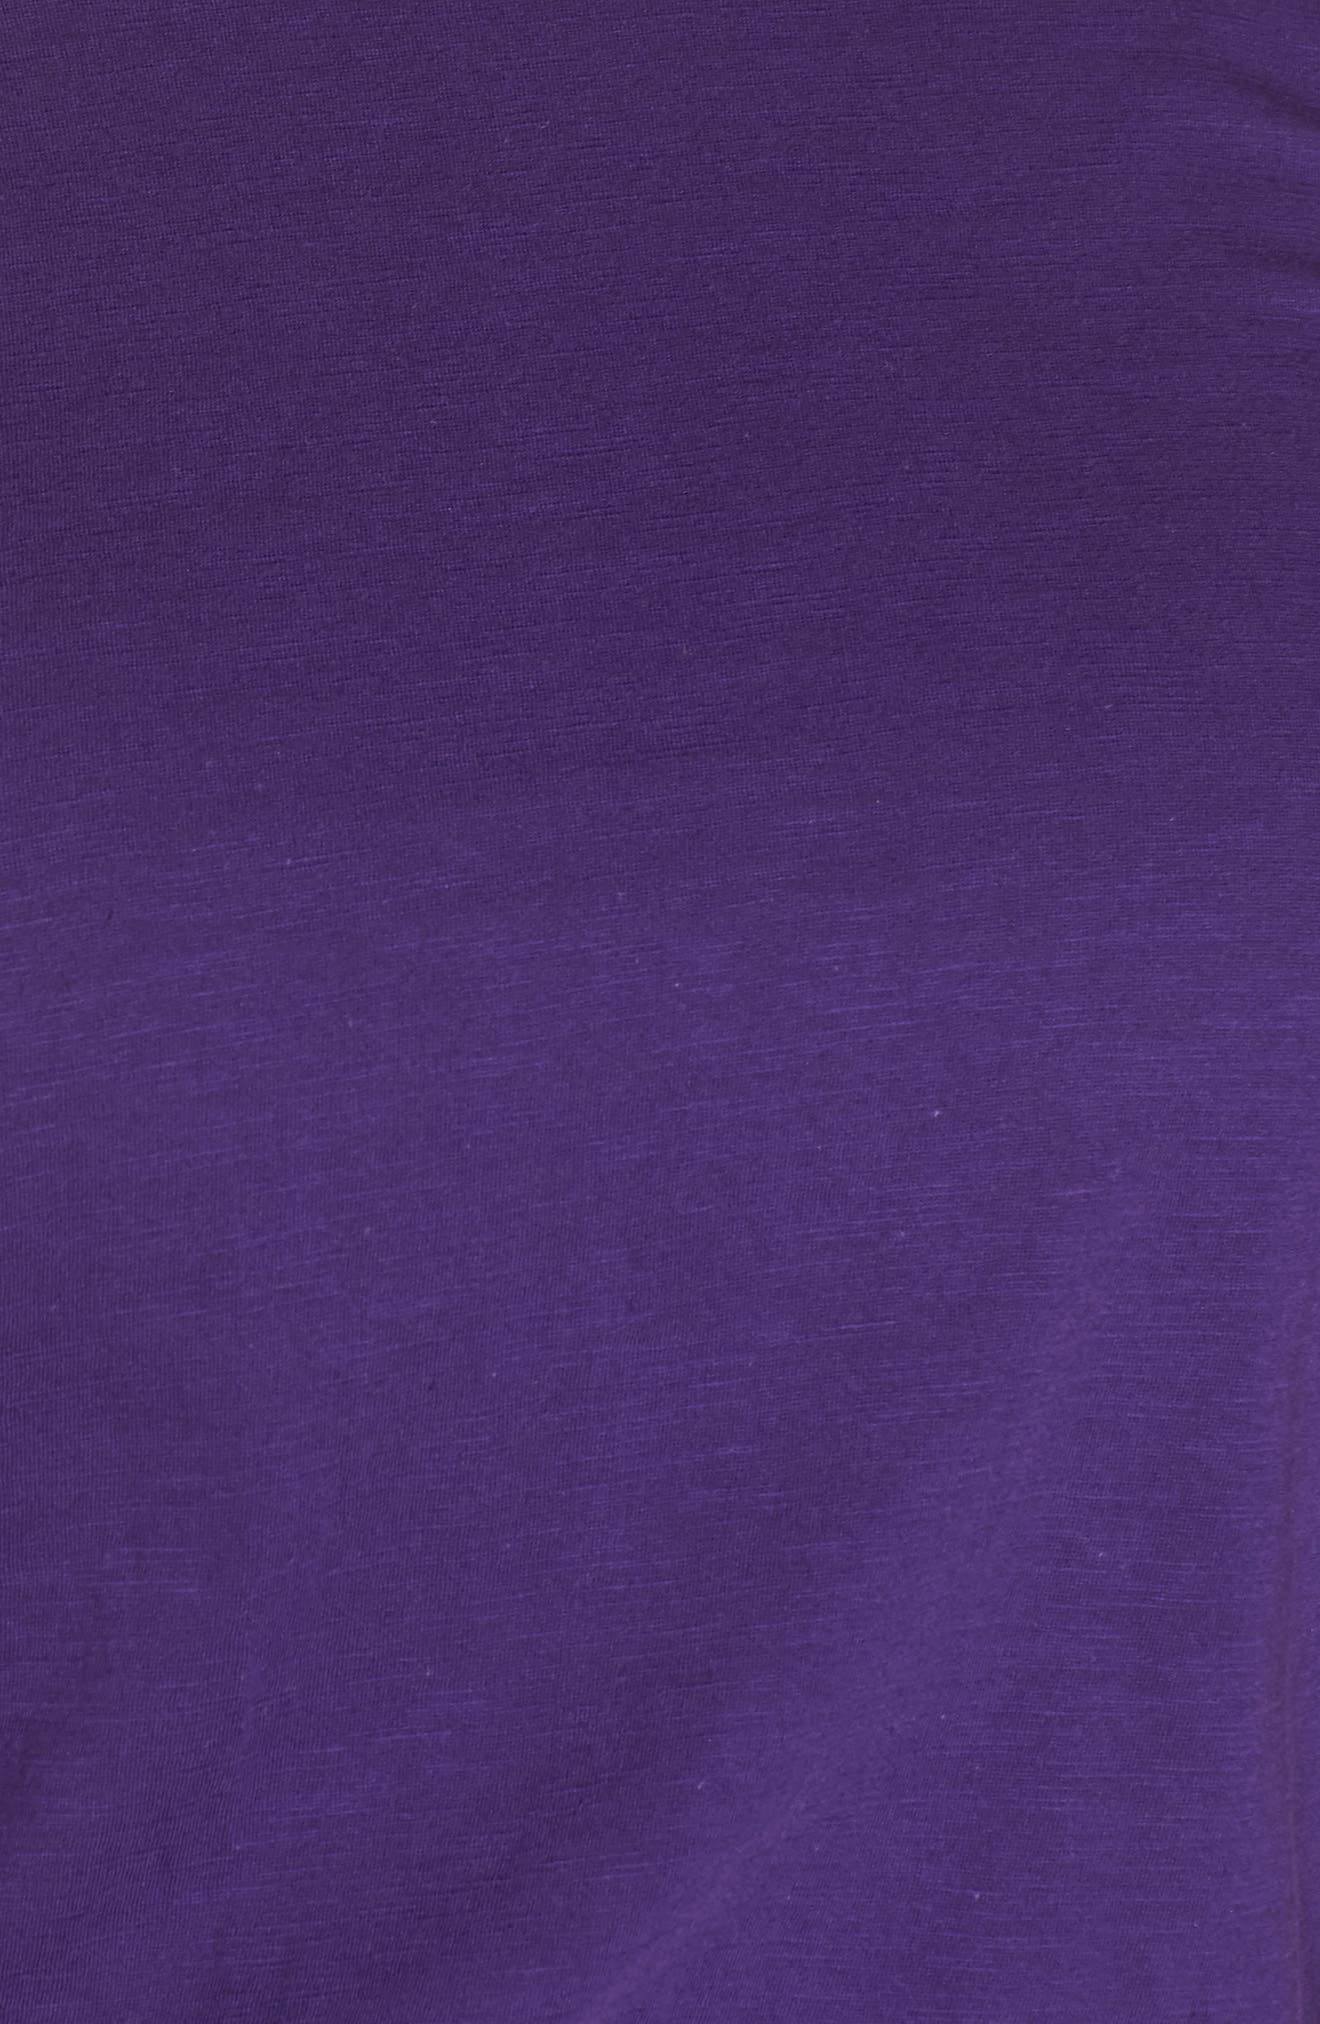 Crewneck Tee,                             Alternate thumbnail 5, color,                             ULTRAVIOLET